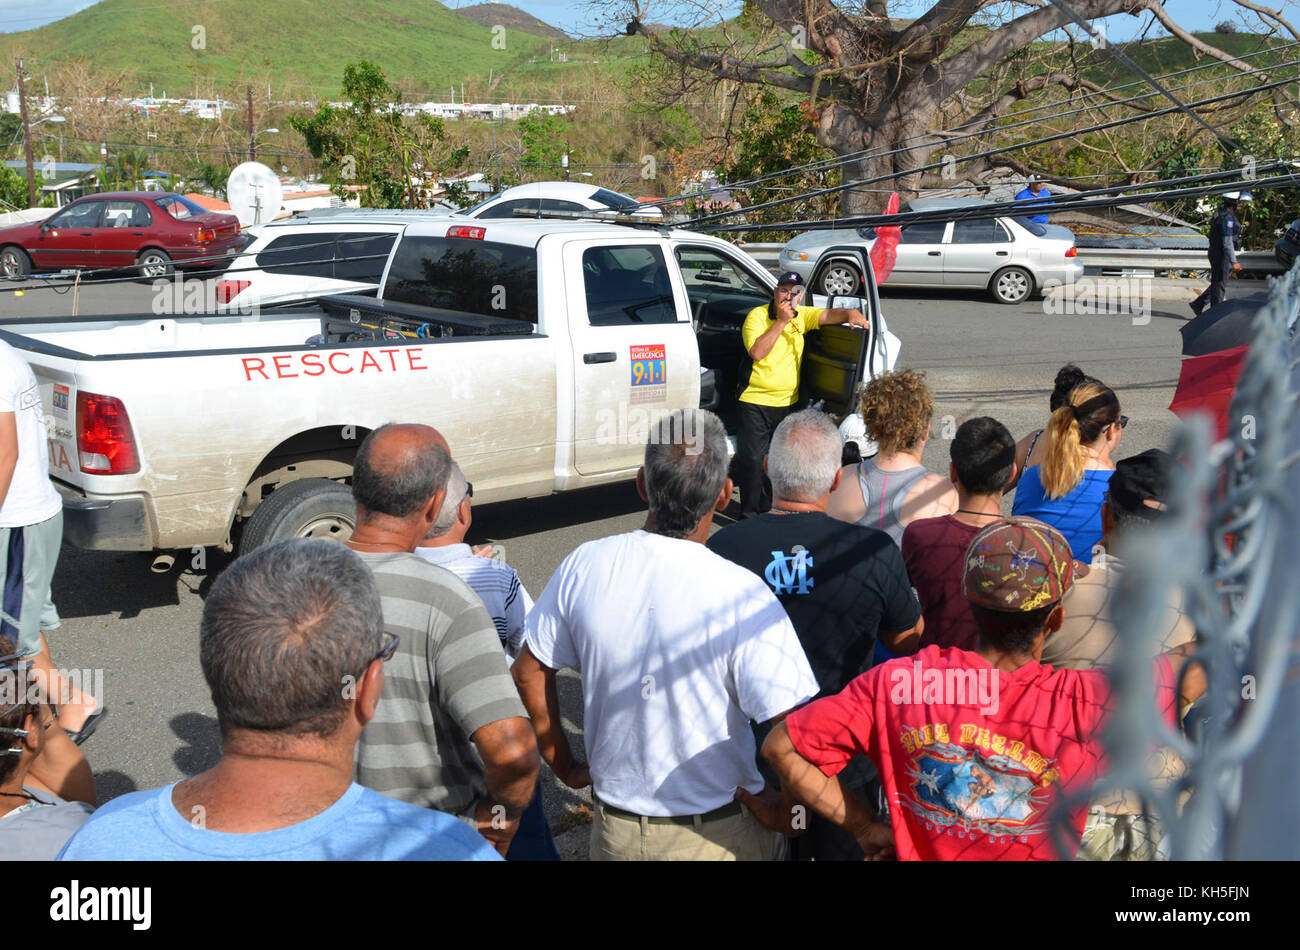 Ramón Hernández-Torres, mayor, Juana Díaz, Puerto Rico, gathers local residents and announces water - Stock Image